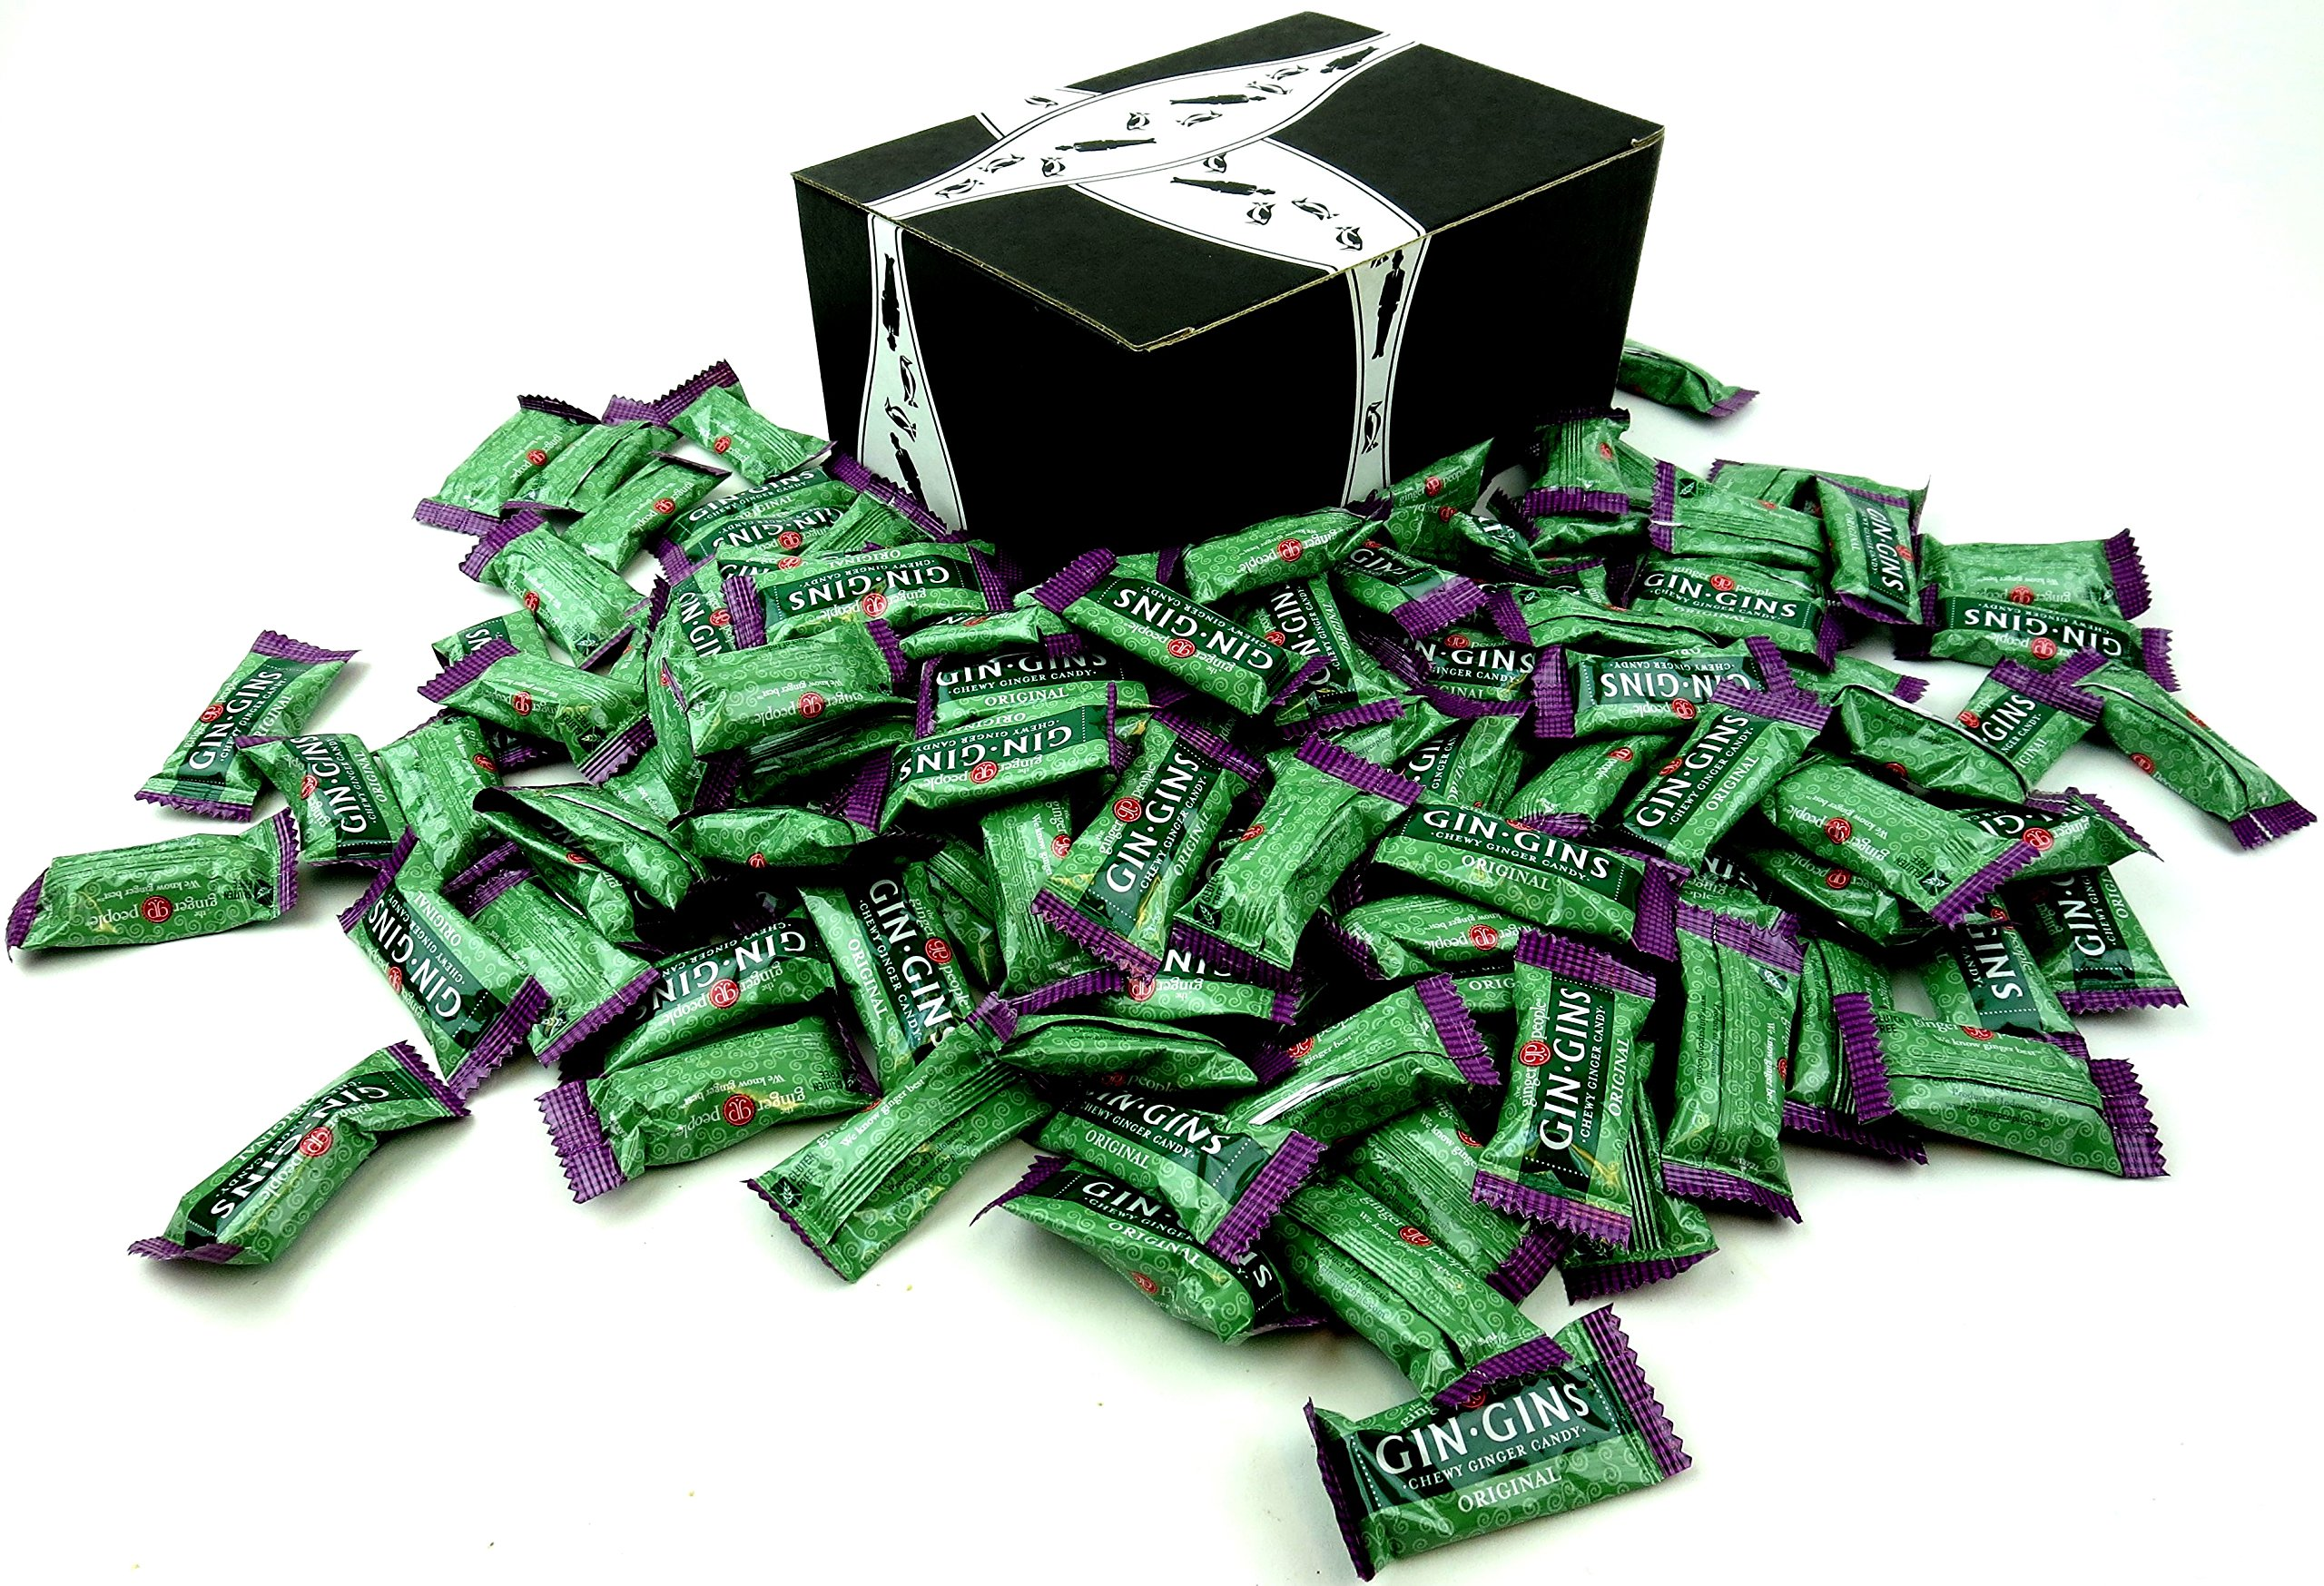 The Ginger People Gin Gins Original Chewy Ginger Candy, 2 lb Bag in a BlackTie Box by Black Tie Mercantile